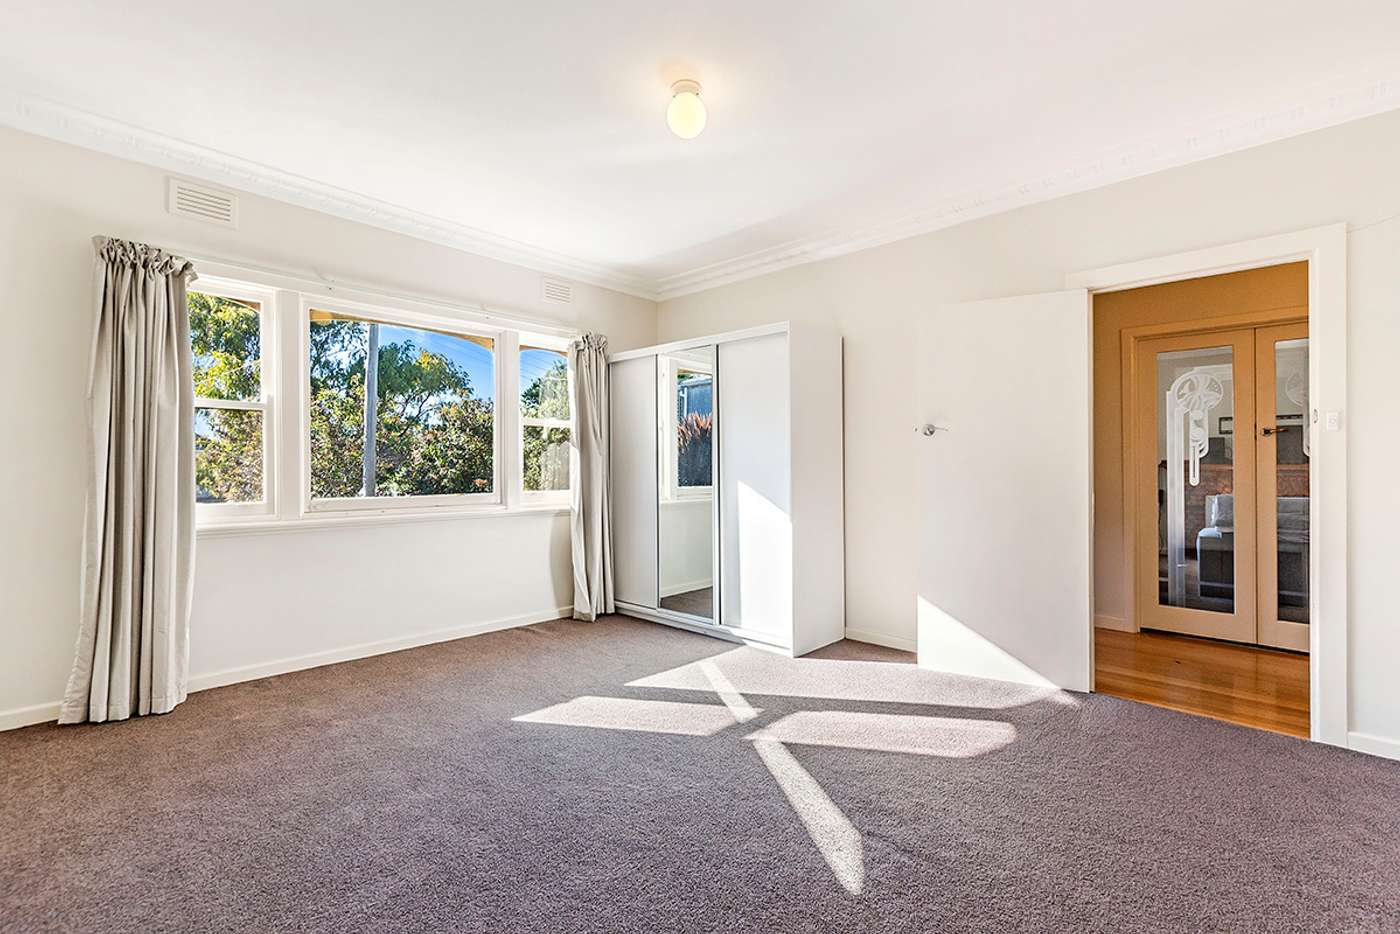 Fifth view of Homely house listing, 6 Sutton Avenue, Portland VIC 3305